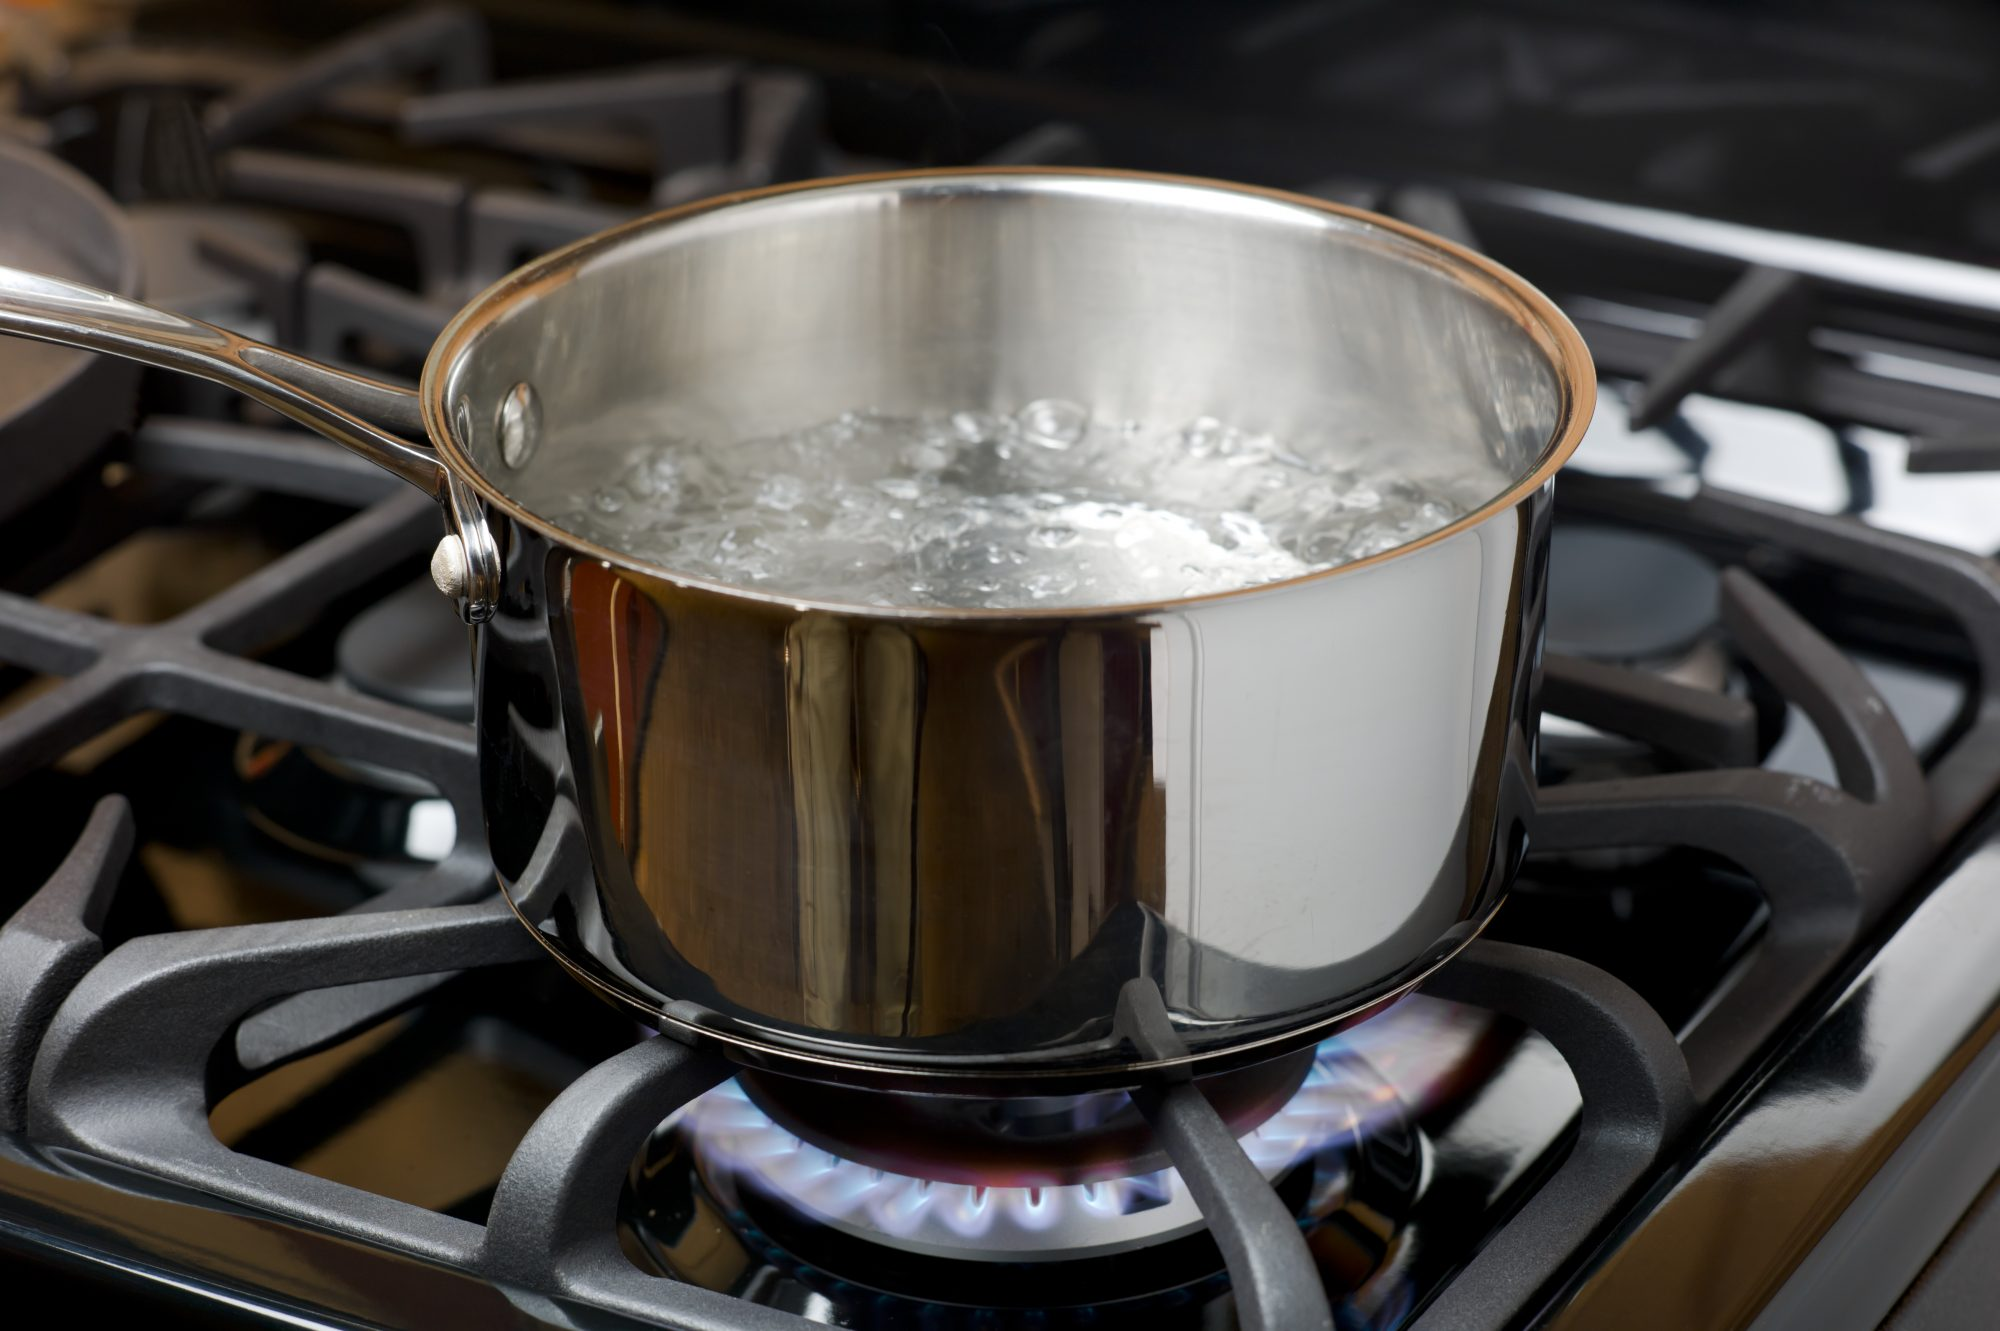 boiling water in a shiny saucepan